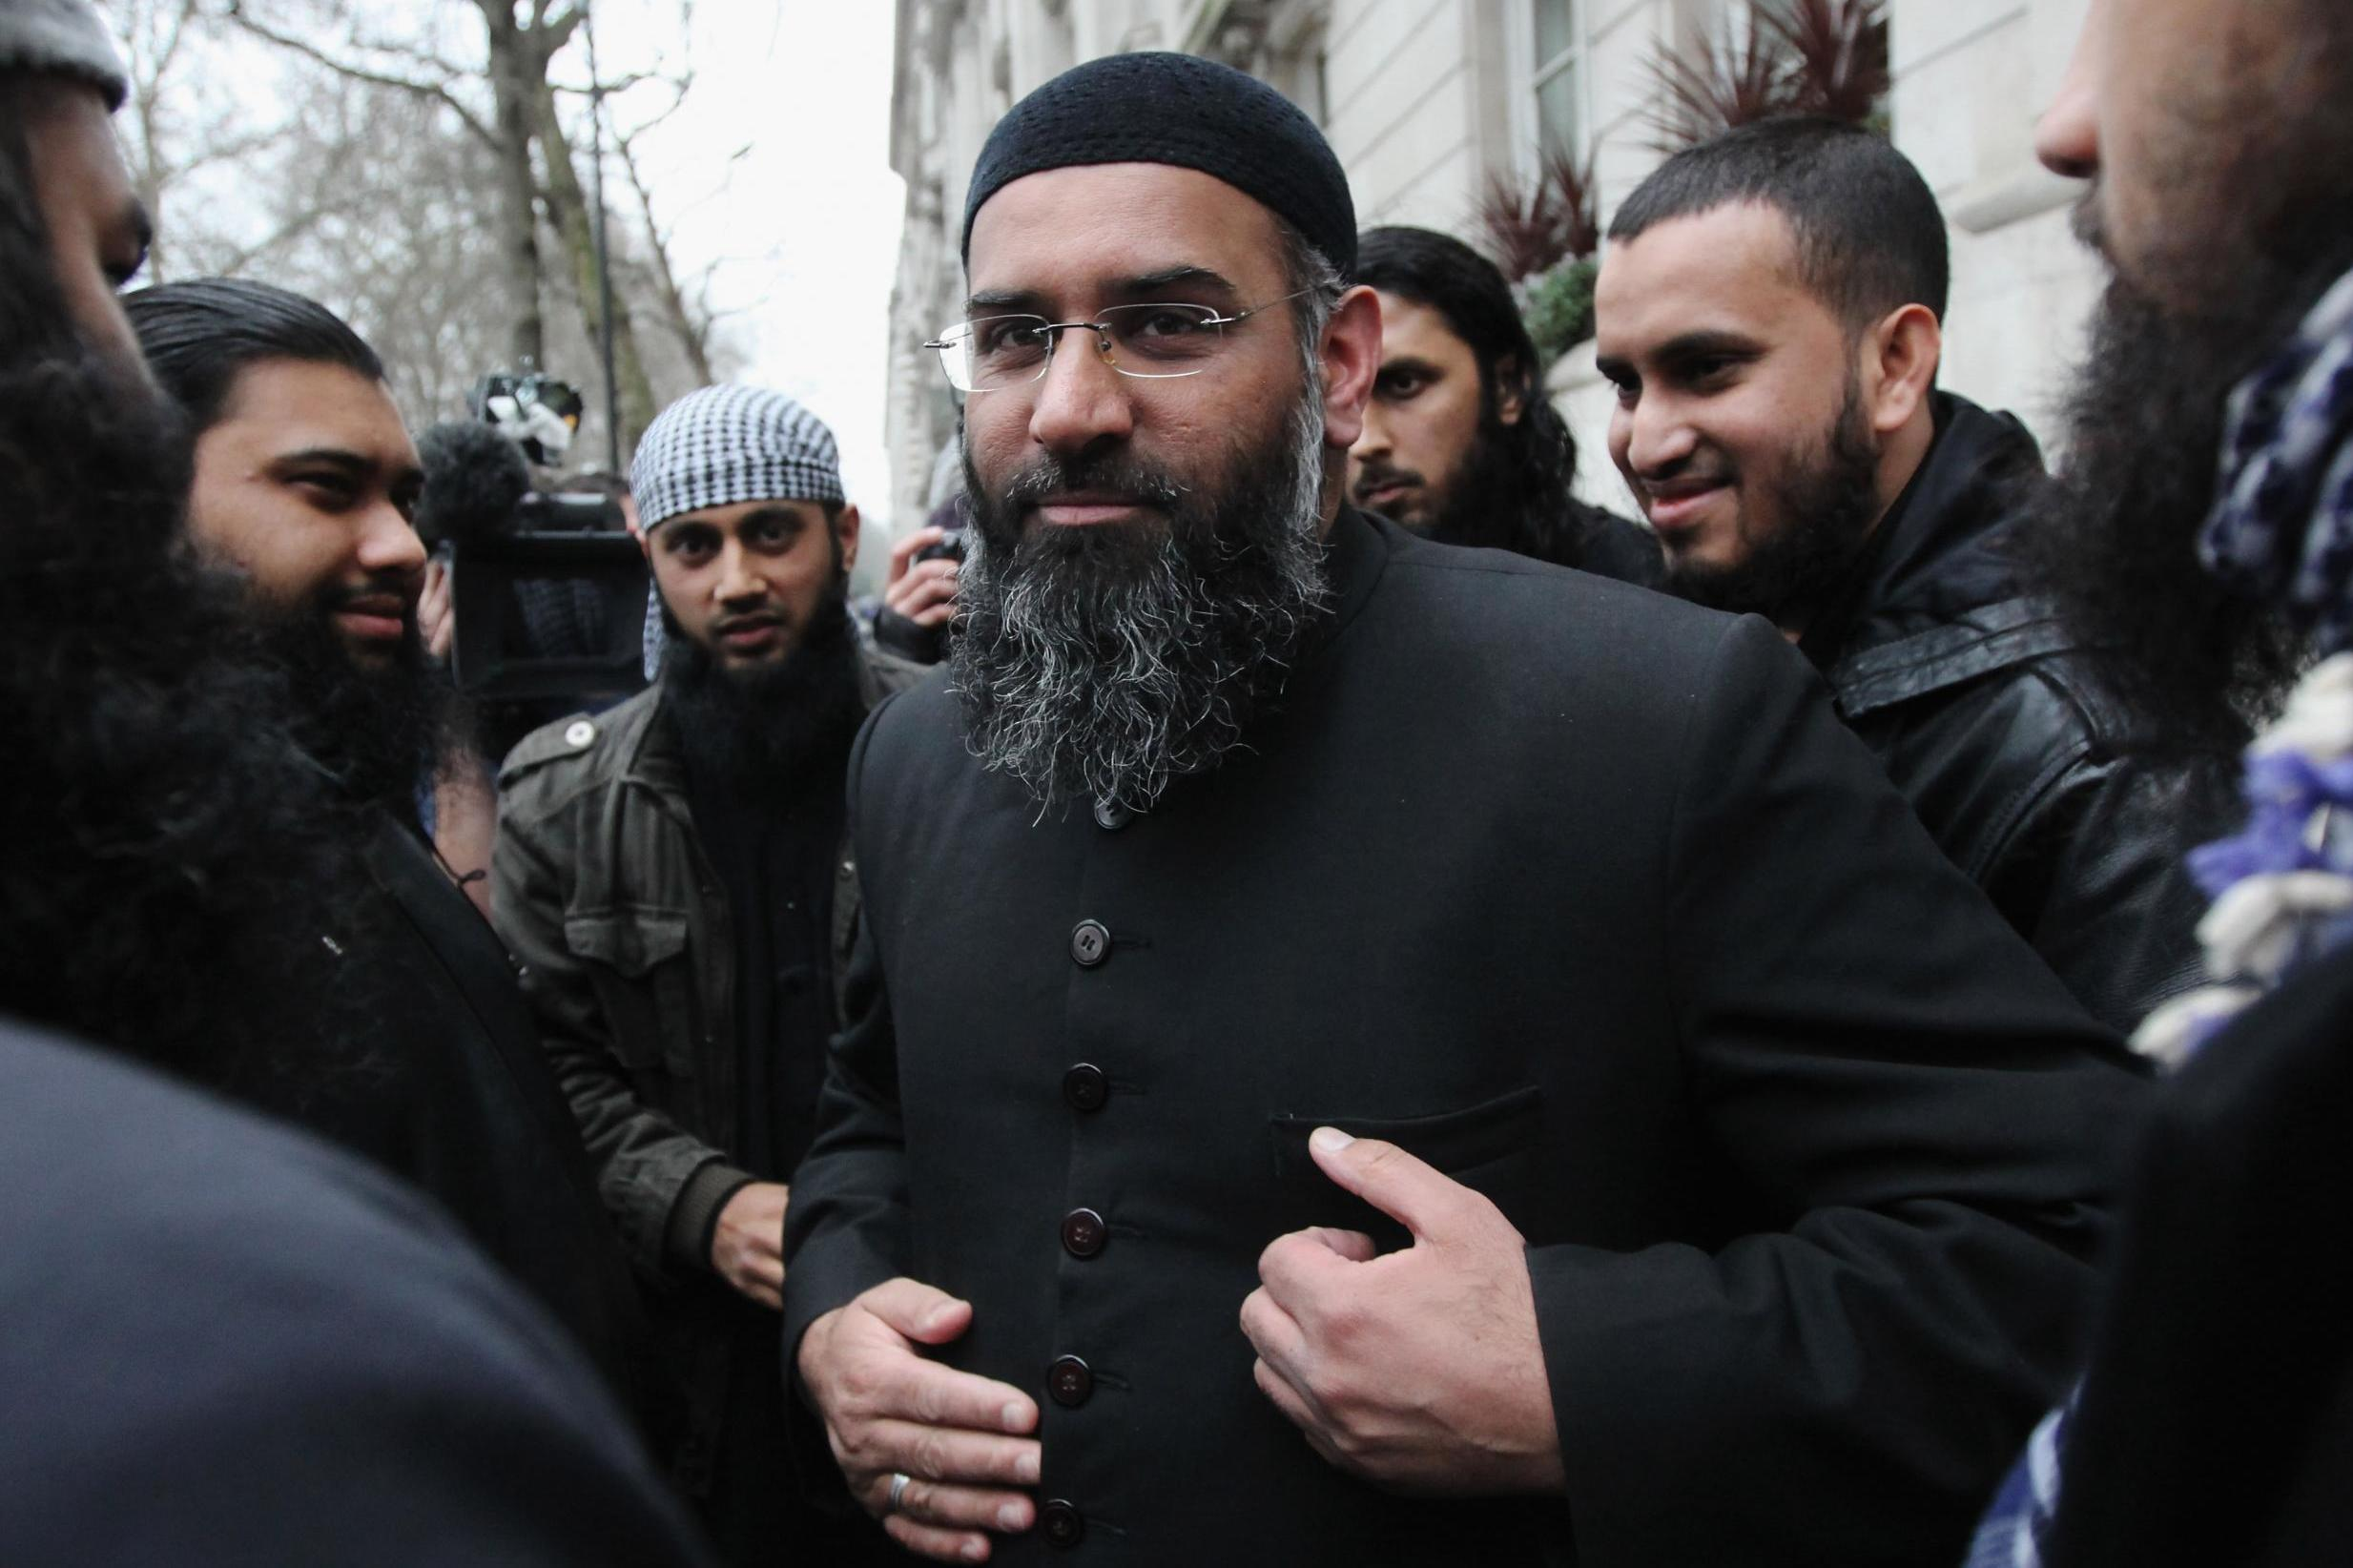 Anjem Choudary has assets frozen days before prison release for supporting Isis